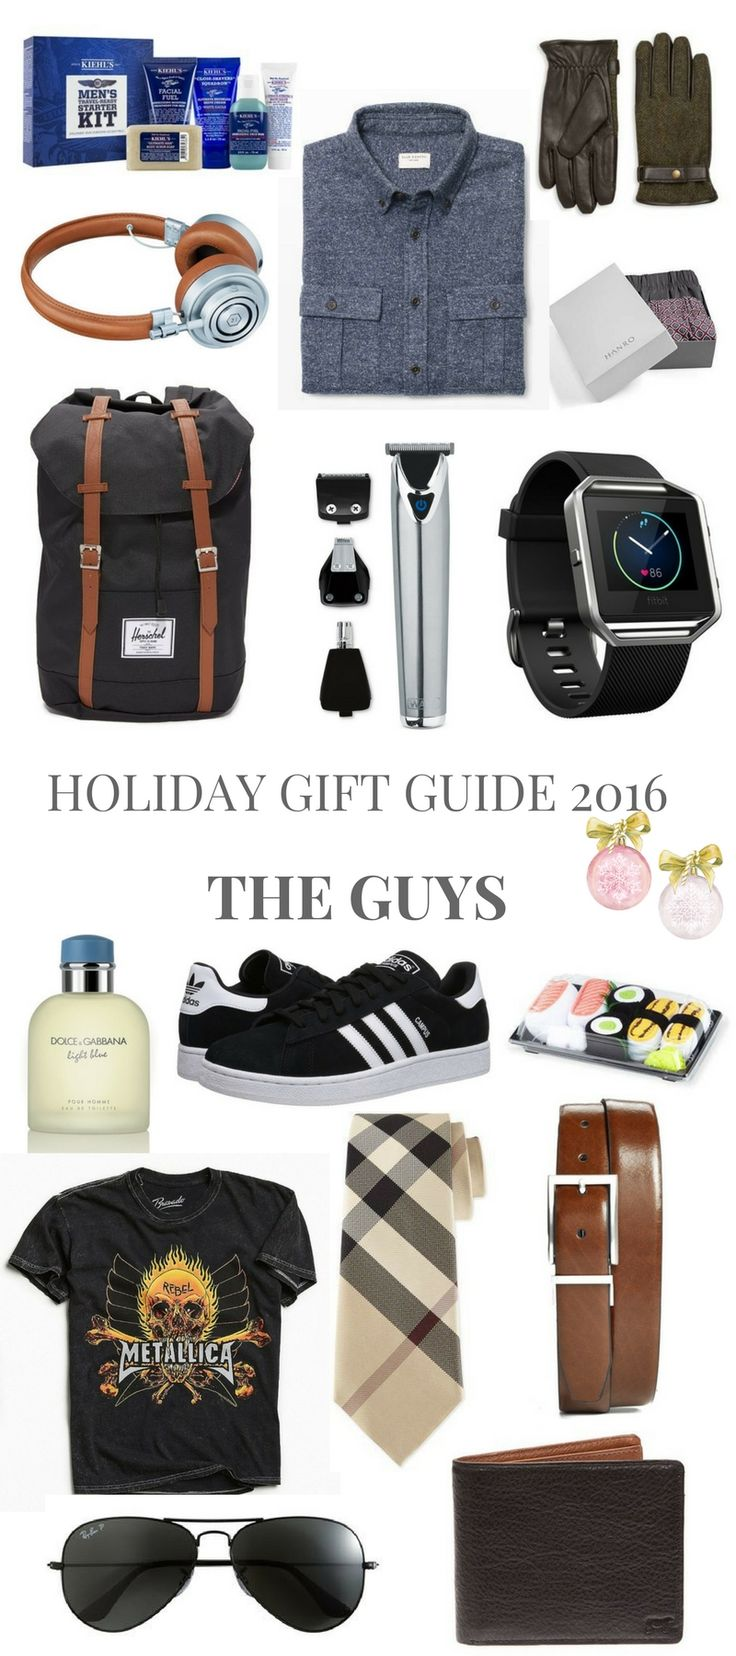 HOLIDAY GIFT GUIDE 2016 THE GUYS // Shoegal Out In The World